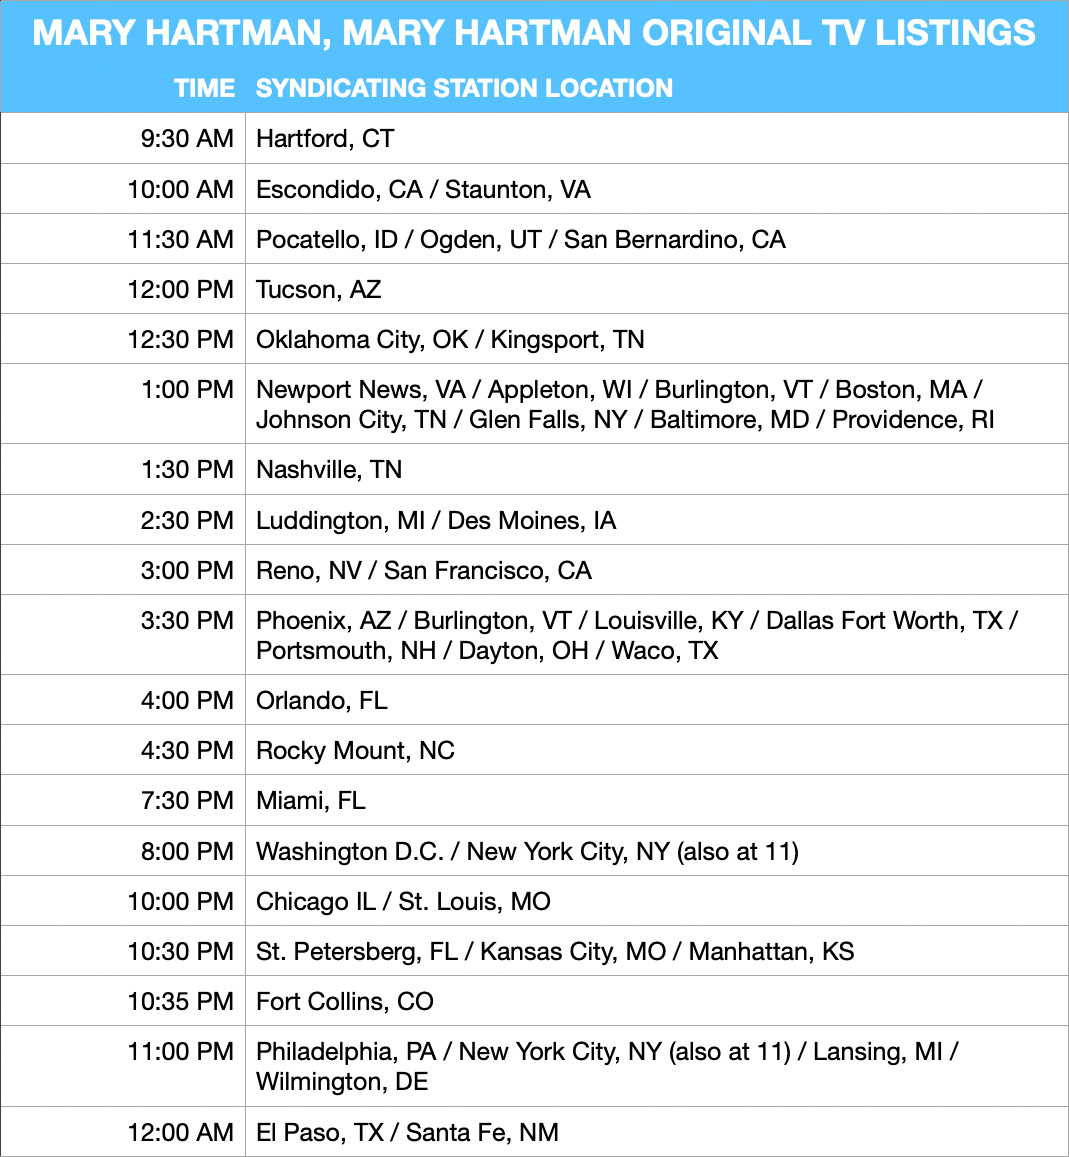 Syndicated TV listings for the show